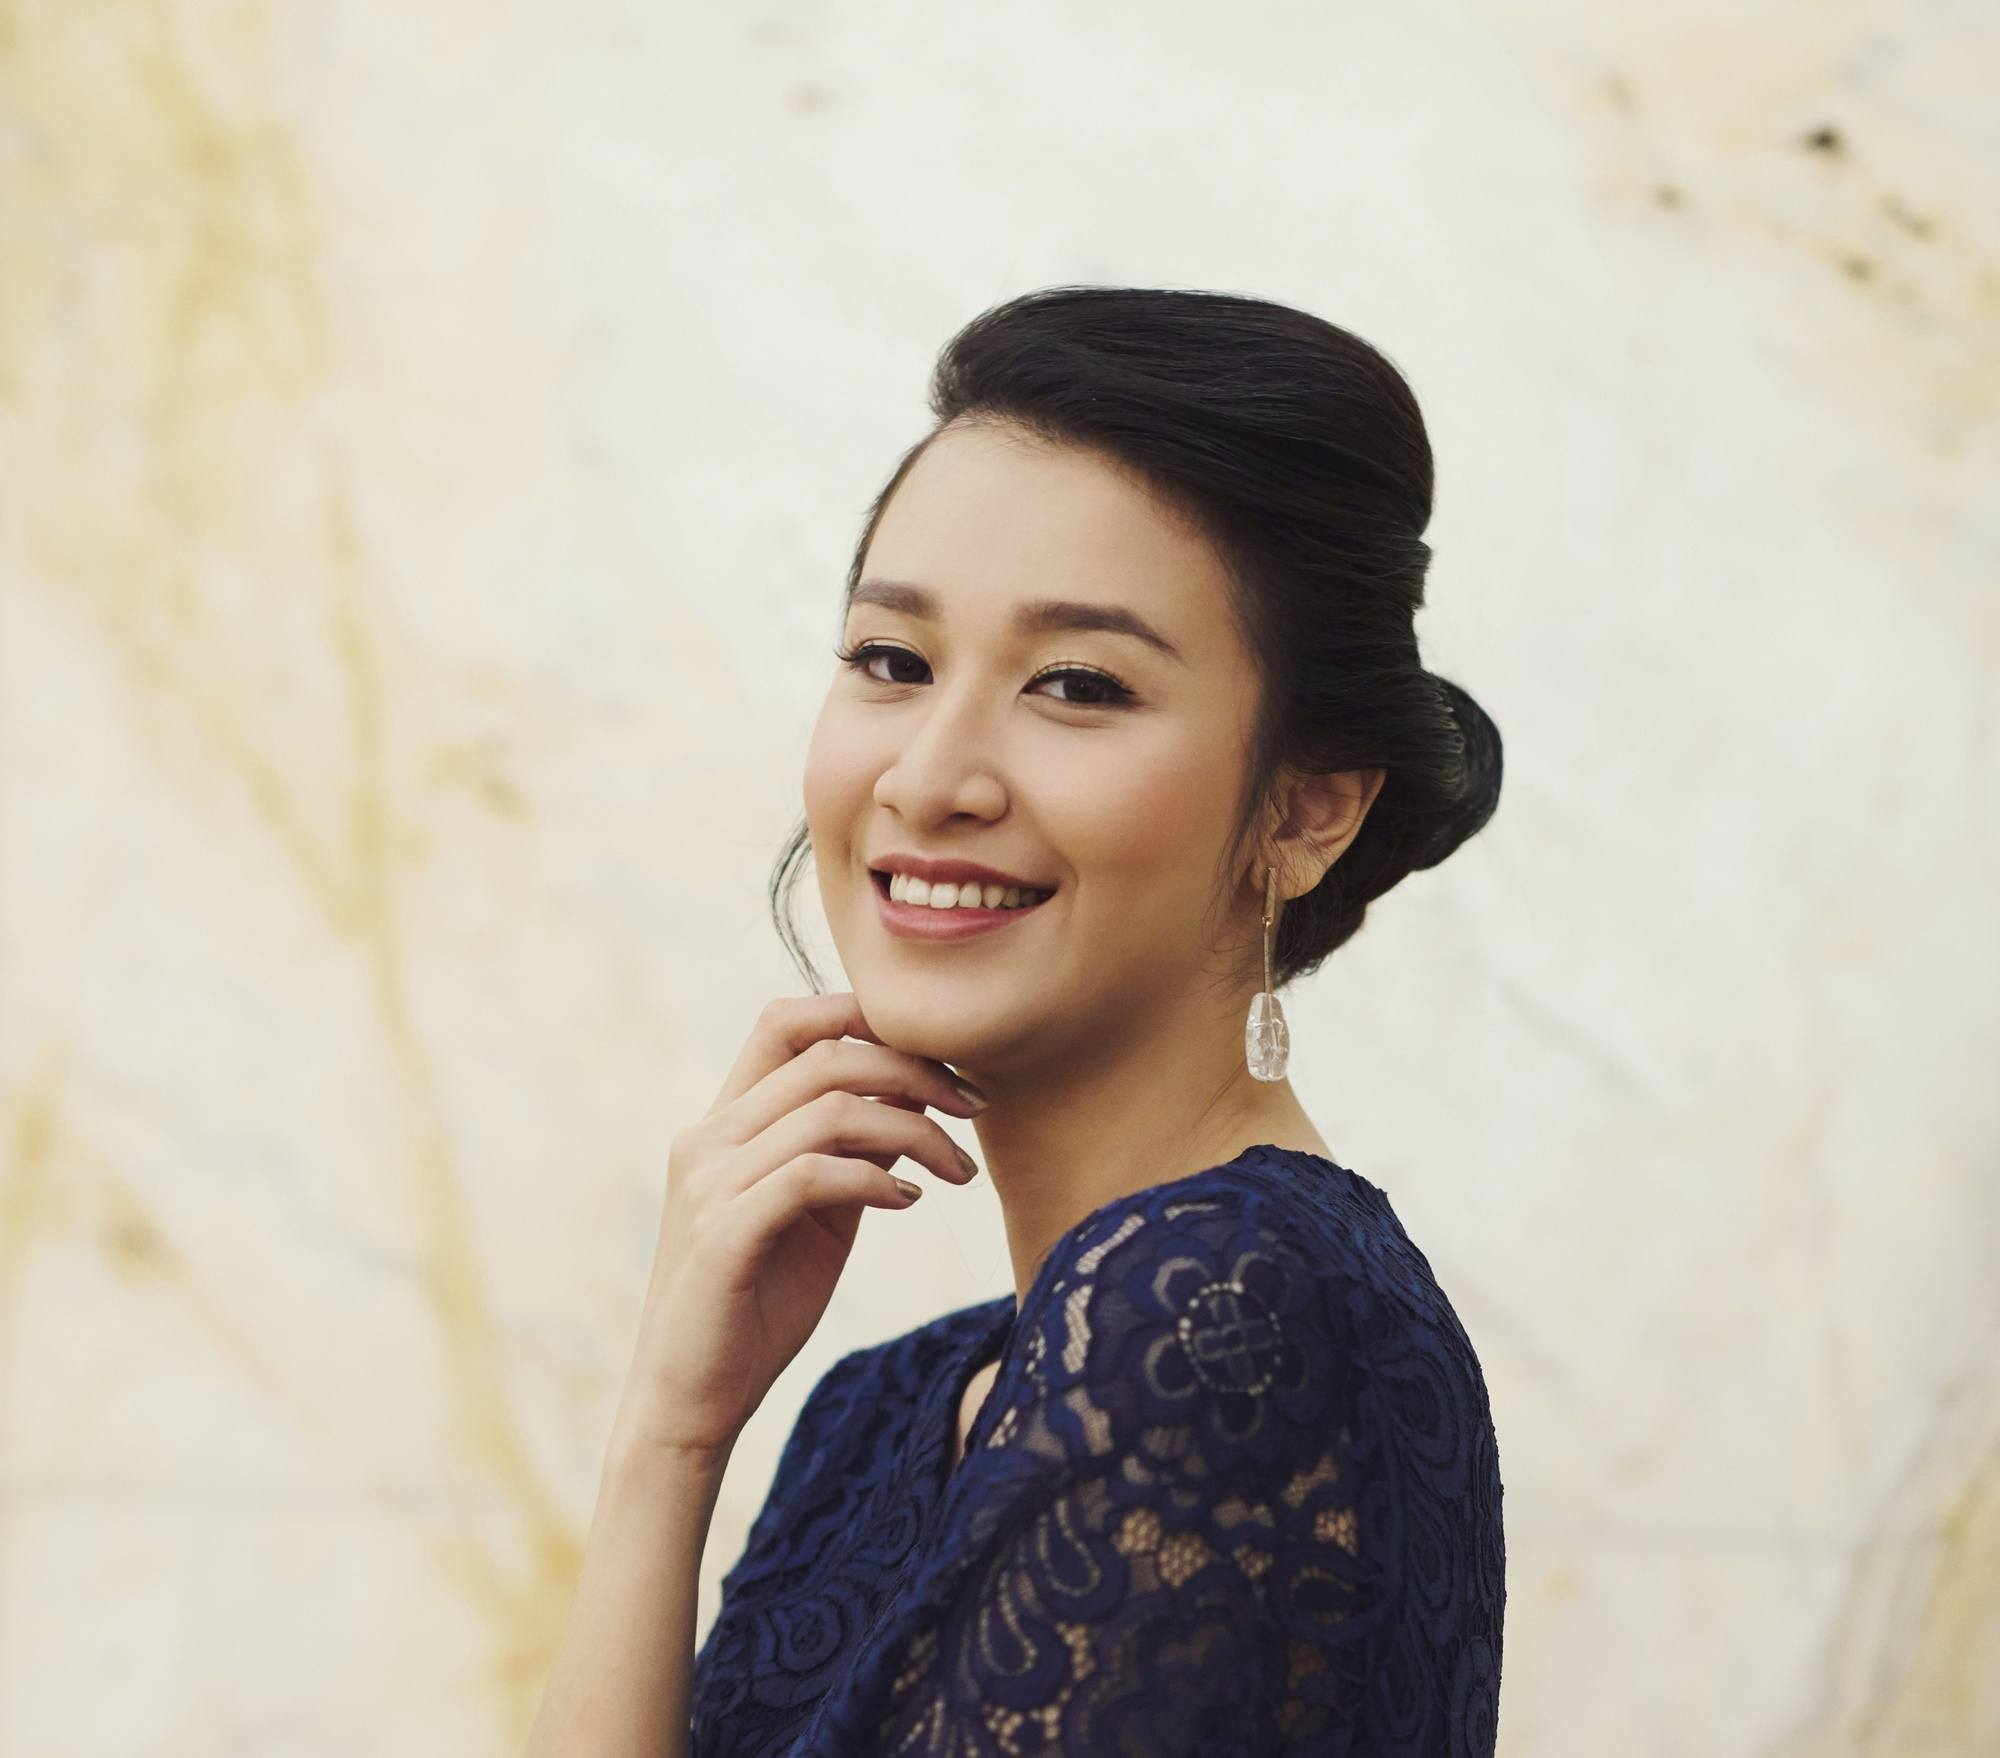 Bridal hairstyle: Closeup shot of an Asian woman with dark hair in a low bun wearing a blue dress outdoors